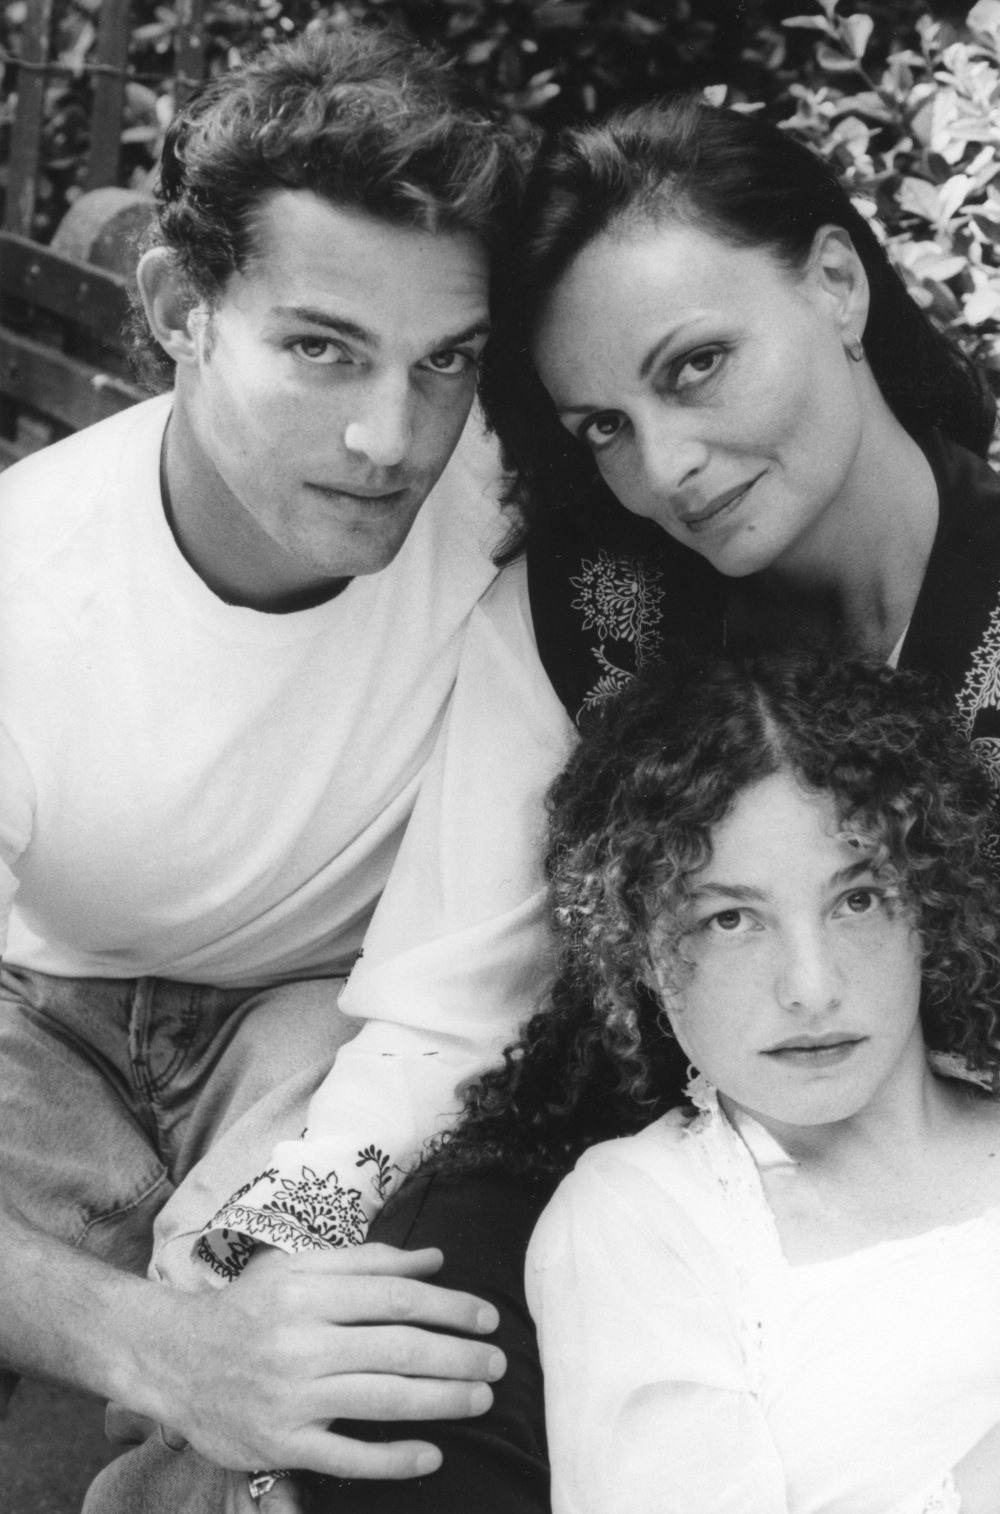 Diane with son Alexander and daughter Tatiana, 1992 (Photography by Wayne Maser)